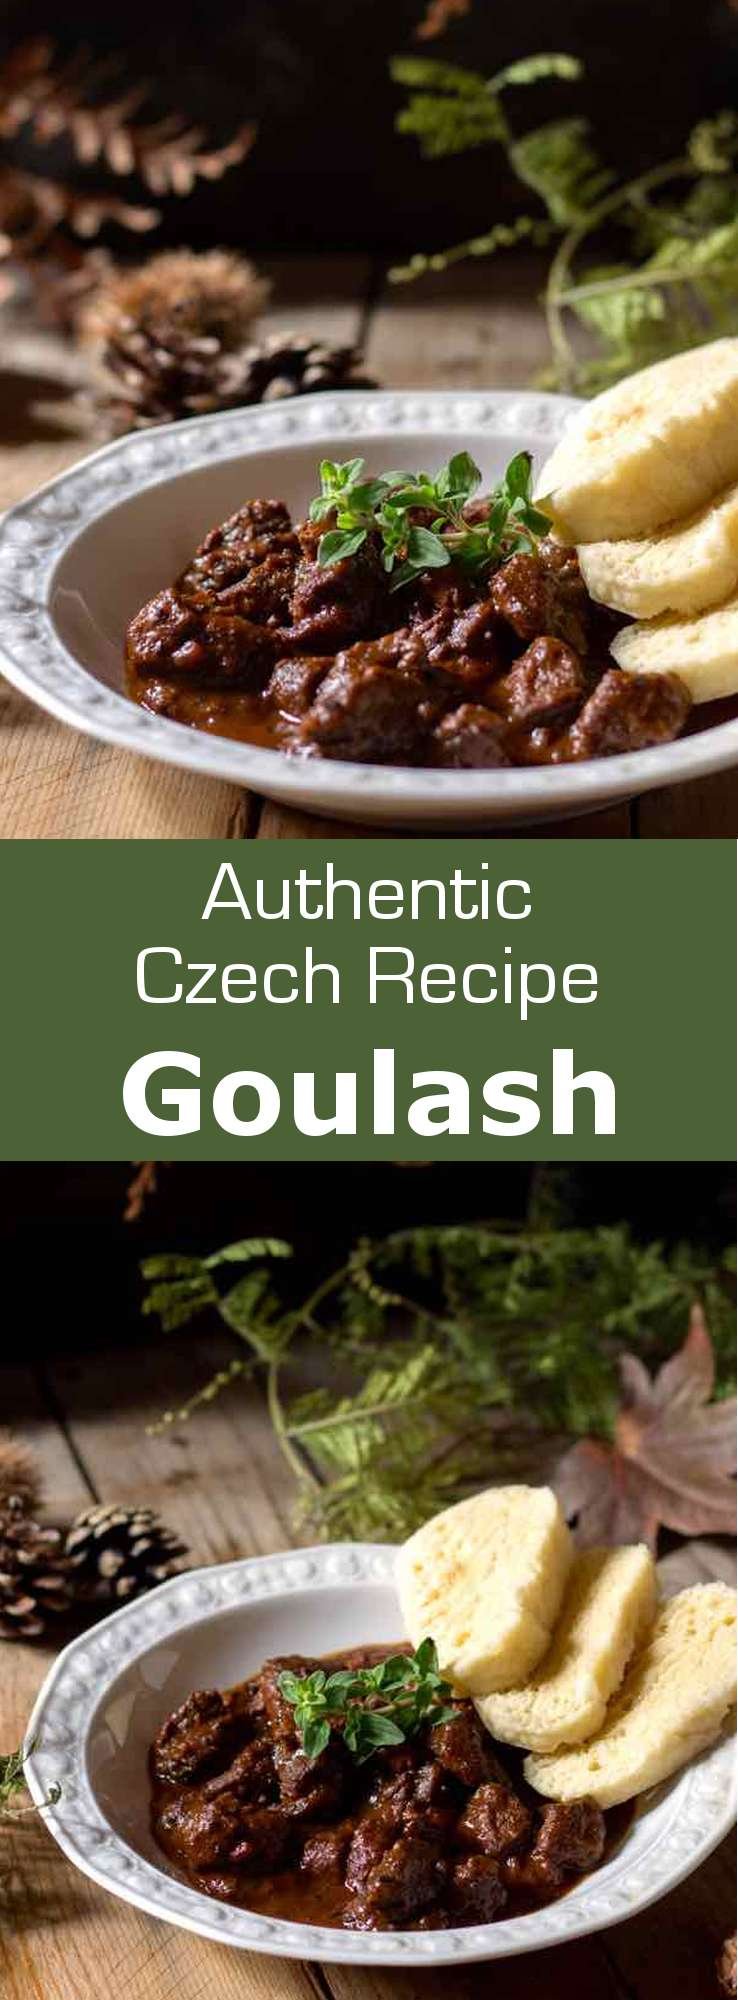 Goulash (guláš in Czech) is a deliciously complex beef stew that is originally from Hungary. It has been a popular comforting recipe in the Central European region of the Carpathian mountains for centuries. #Czech #Hungarian #CzechCuisine #HungarianCuisine #Hungary #Stew #Soup #WorldCuisine #196flavors